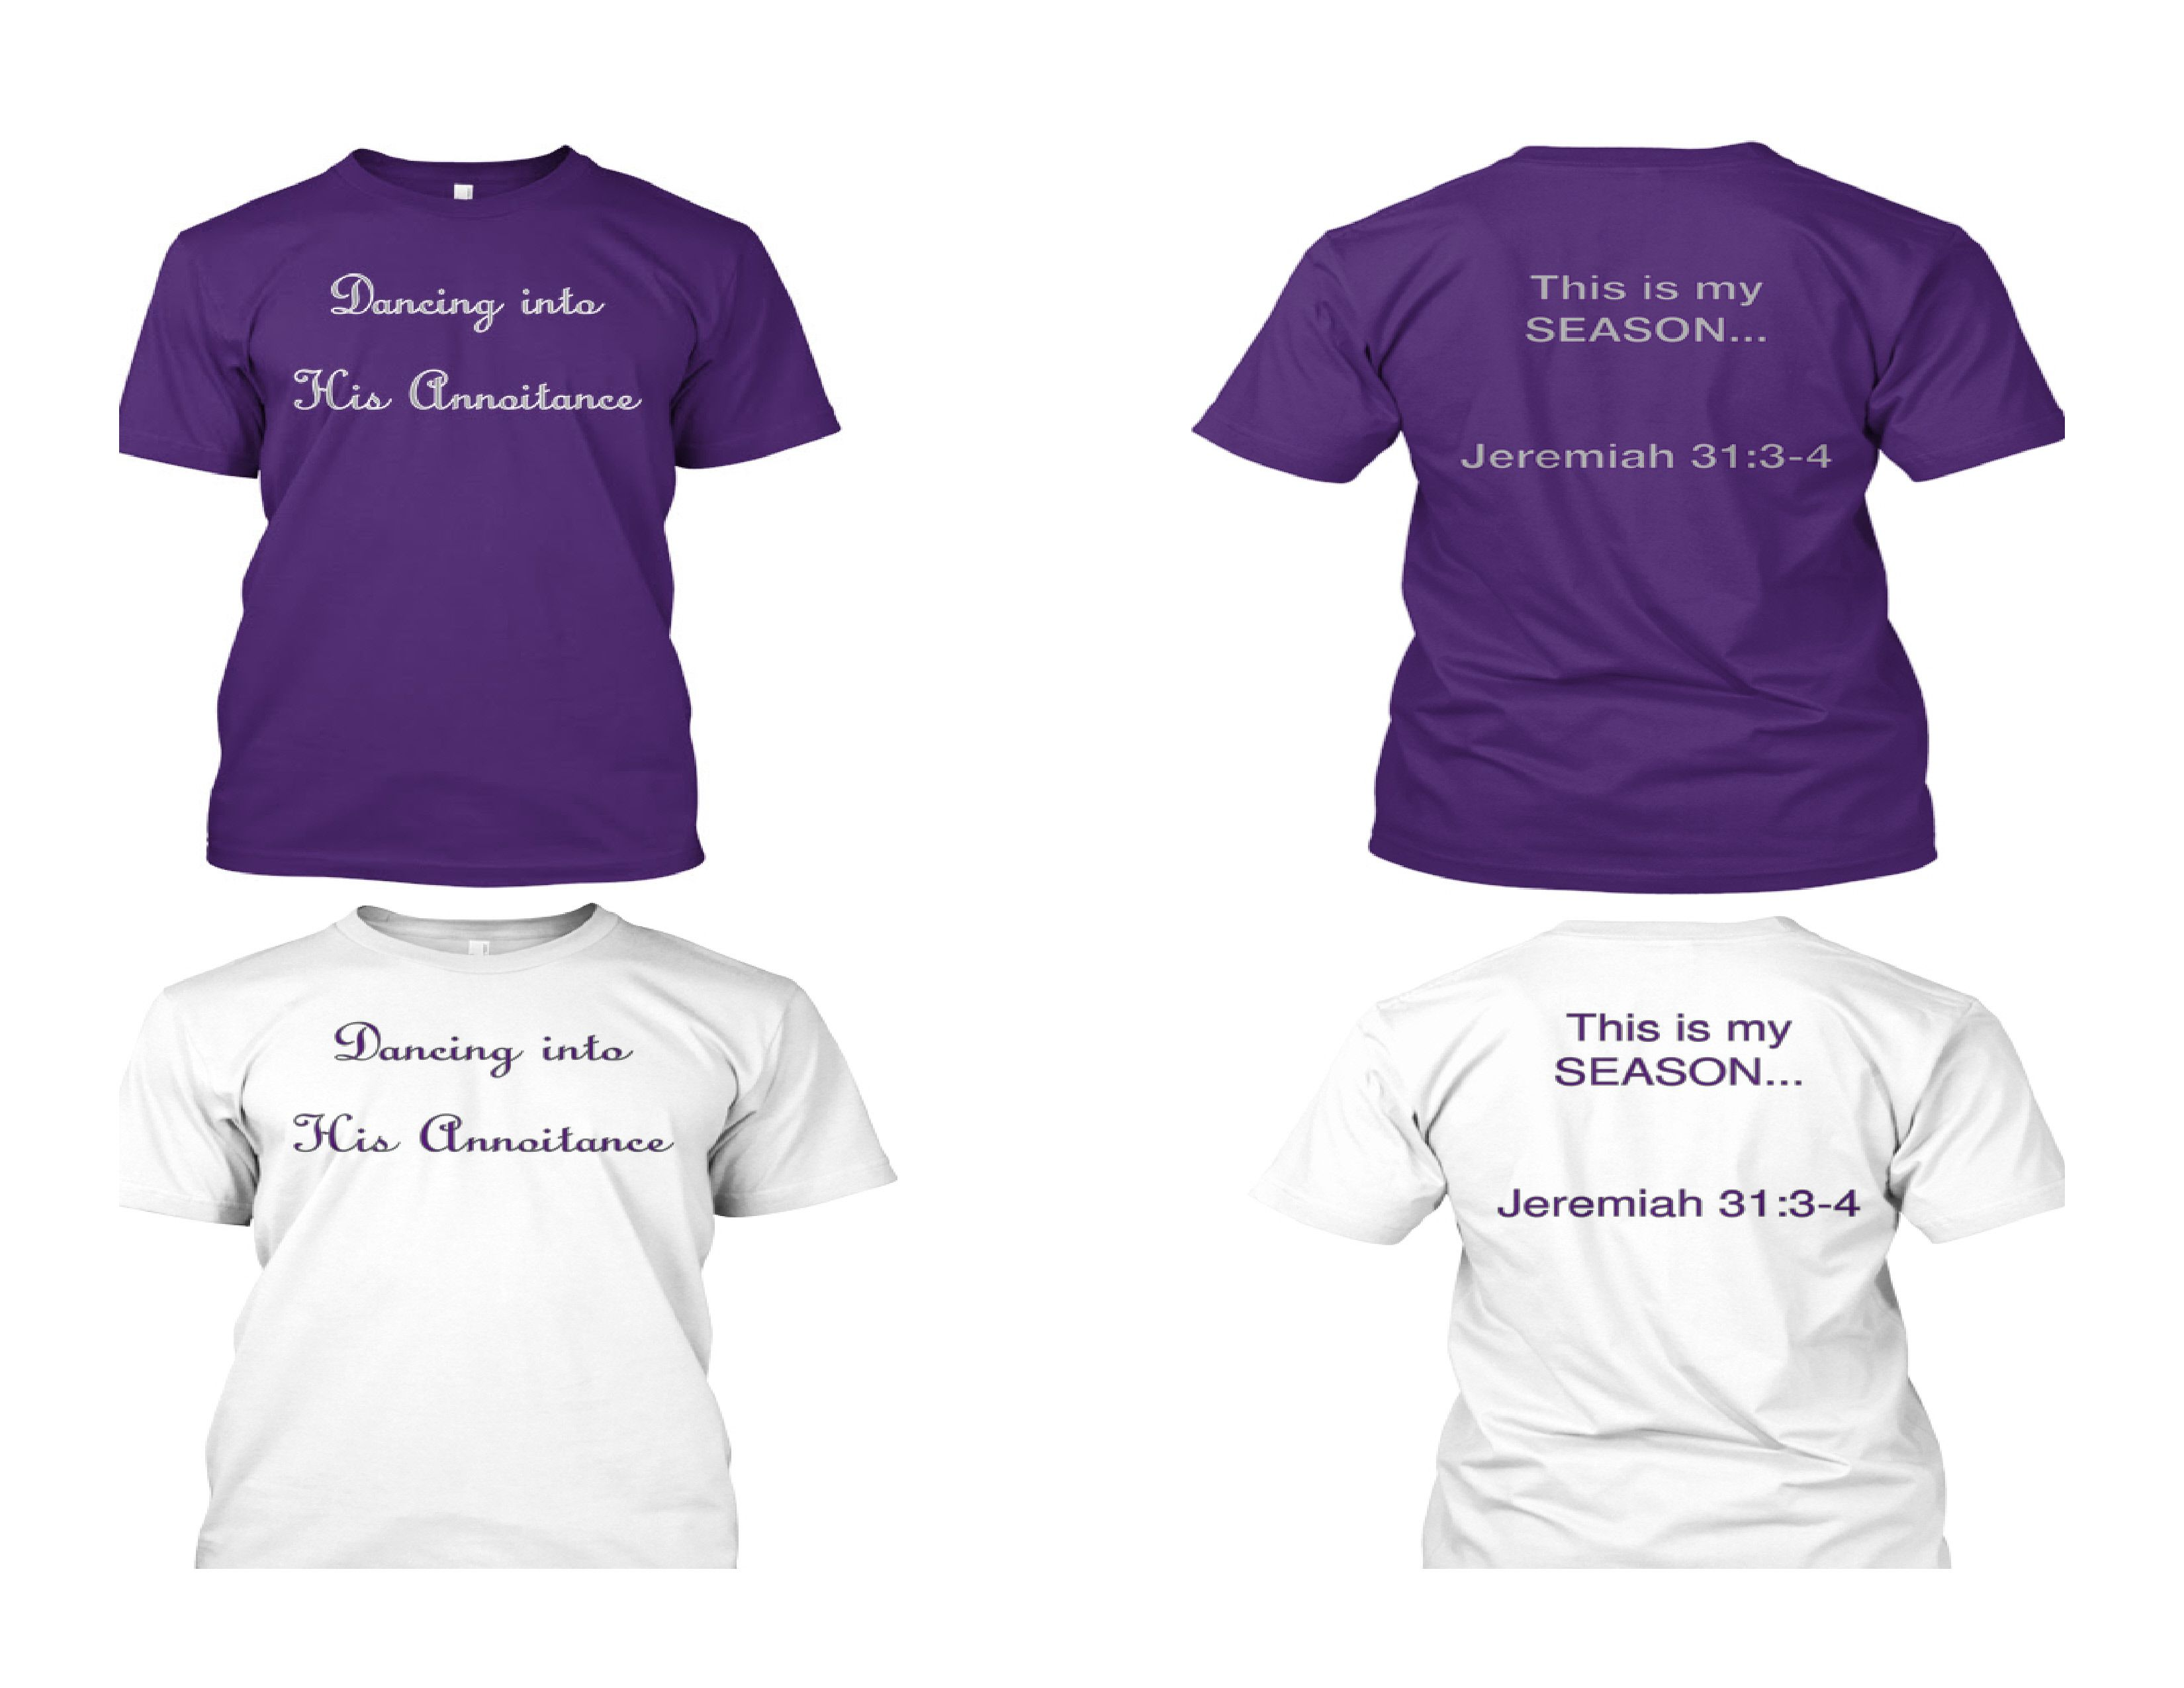 These T Shirts Are Great For Any Church Group Or Individual They Come In Two Colors Purple Or White Their Affordable And C Great T Shirts Shirts Mens Tops